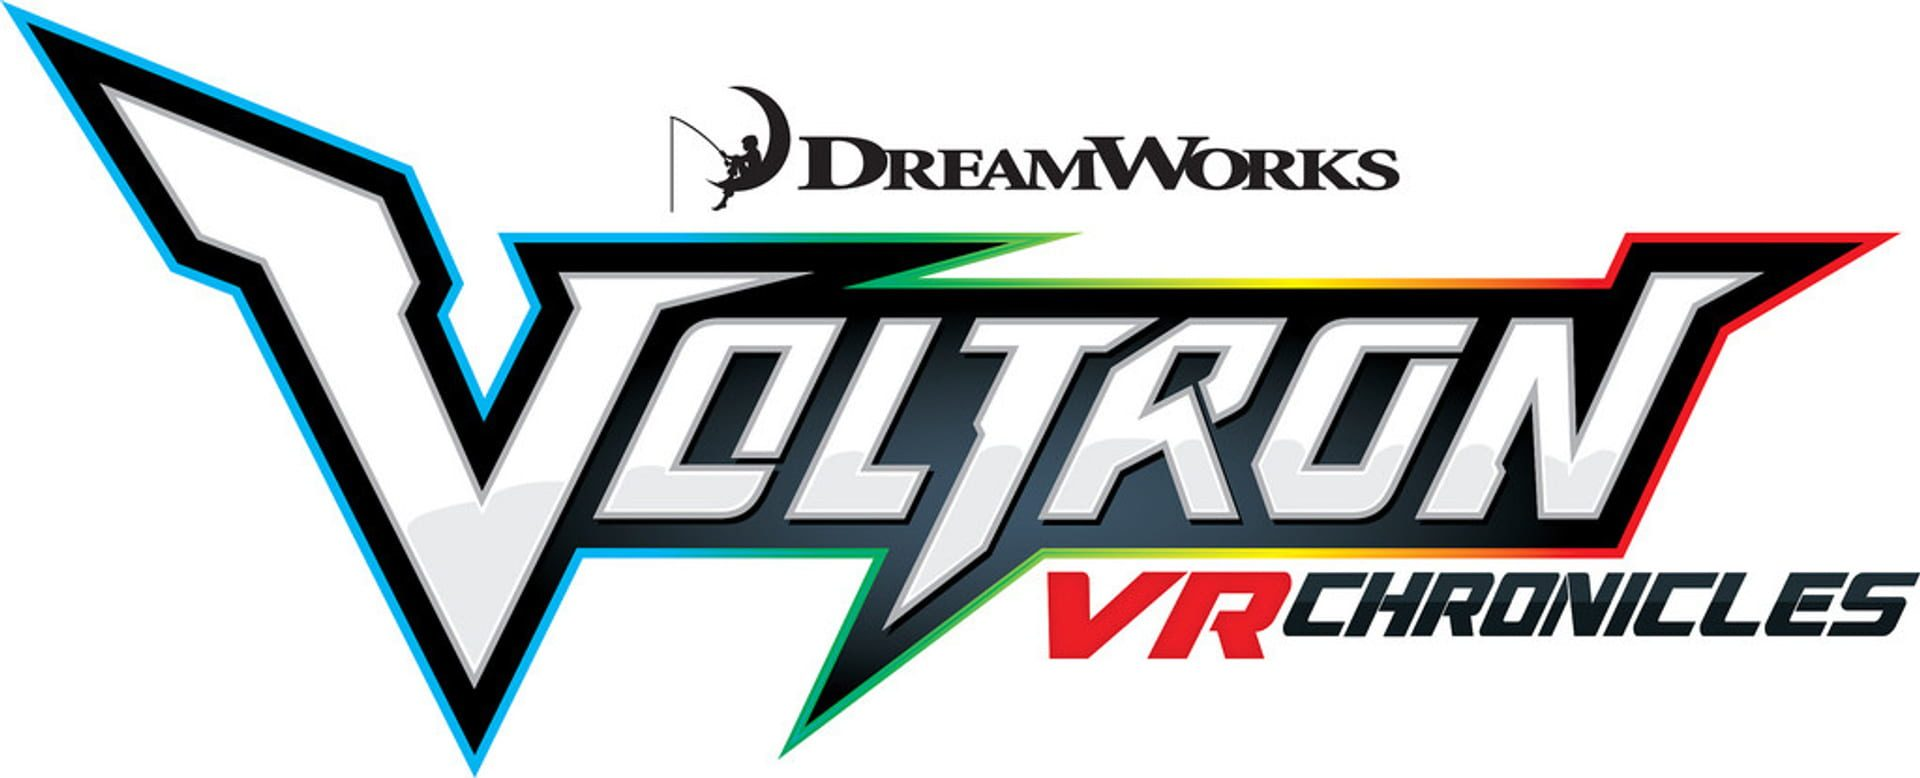 buy Dreamworks Voltron VR Chronicles cd key for pc platform